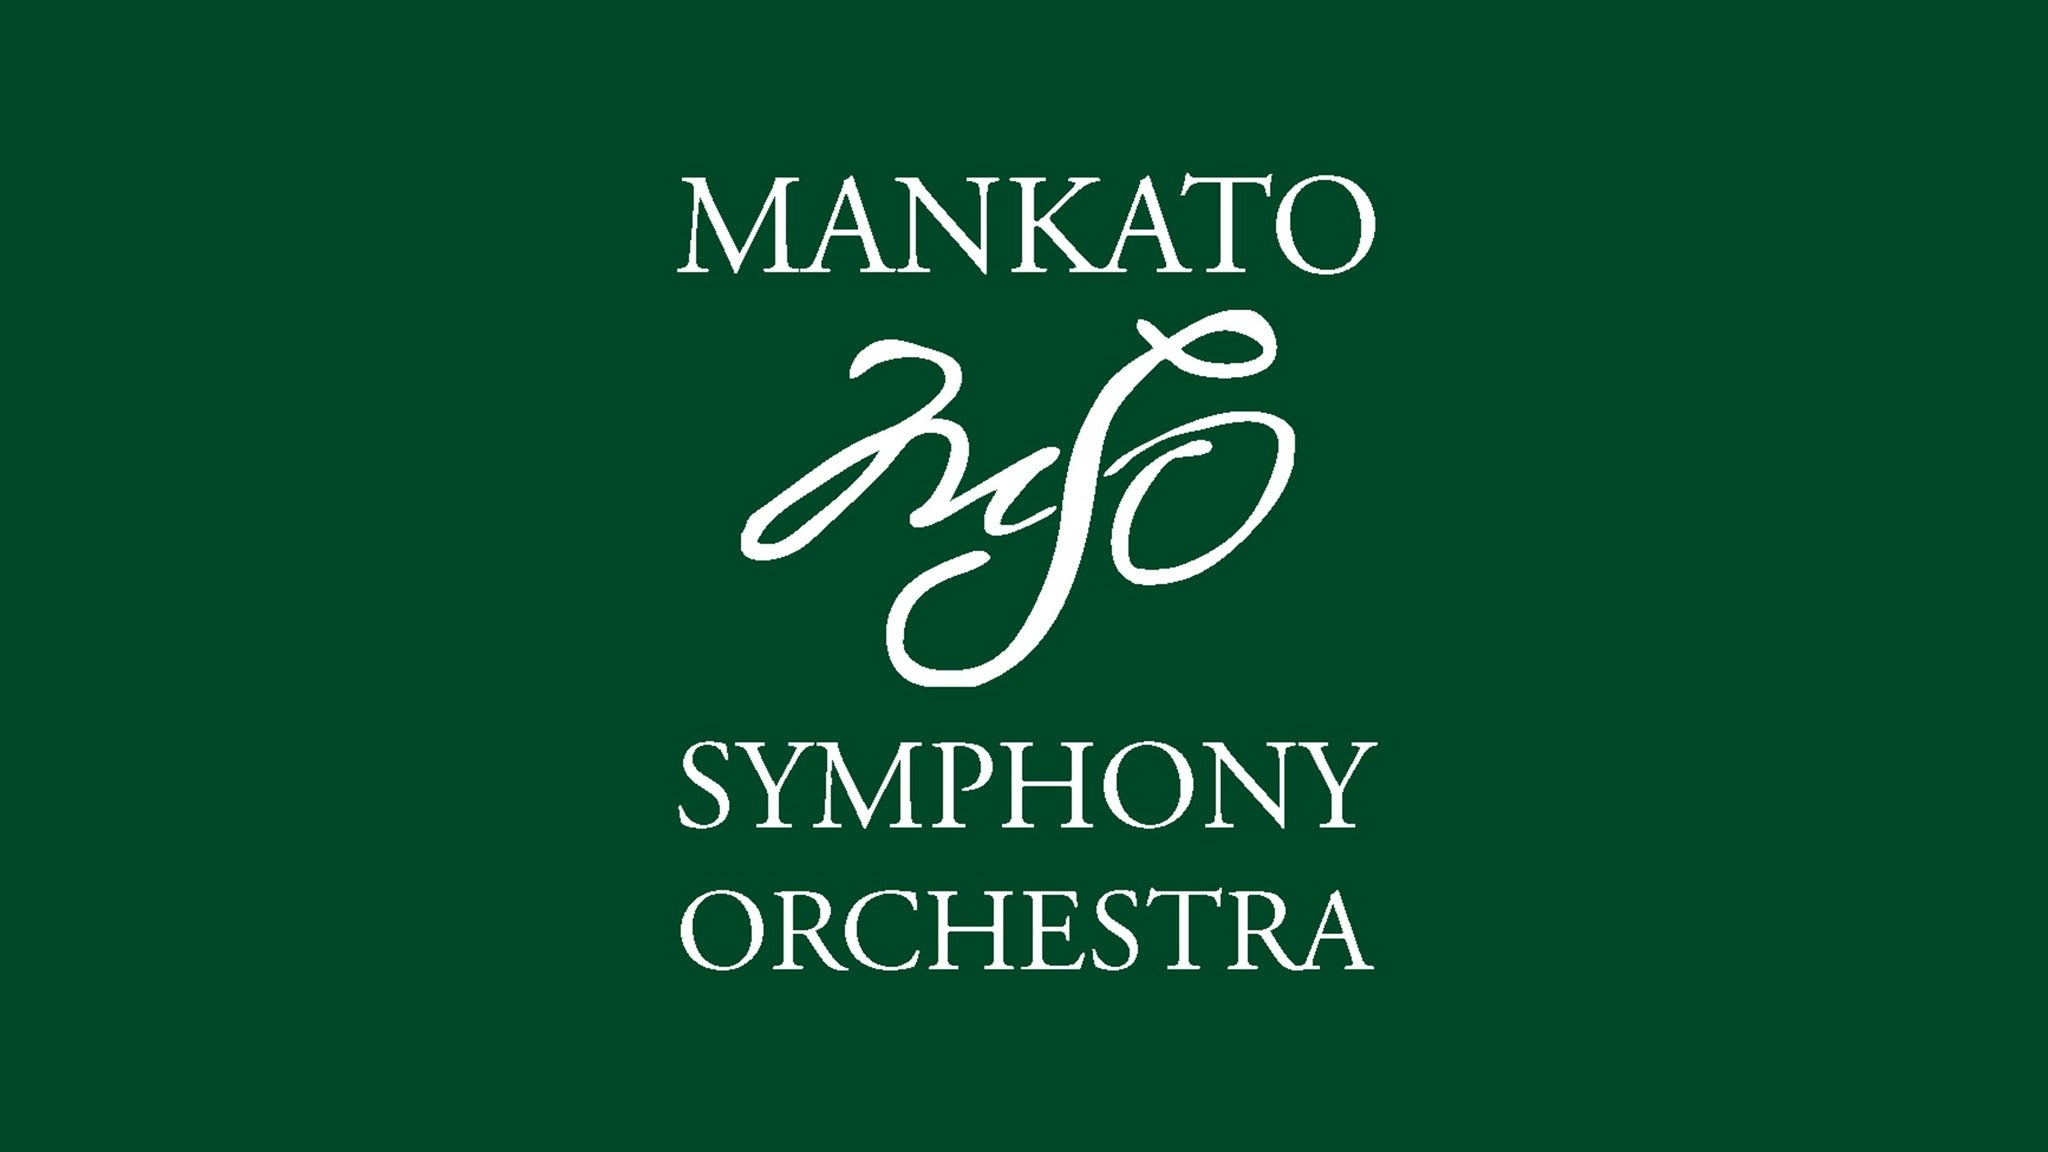 Mankato Symphony Orchestra at Verizon Wireless Center